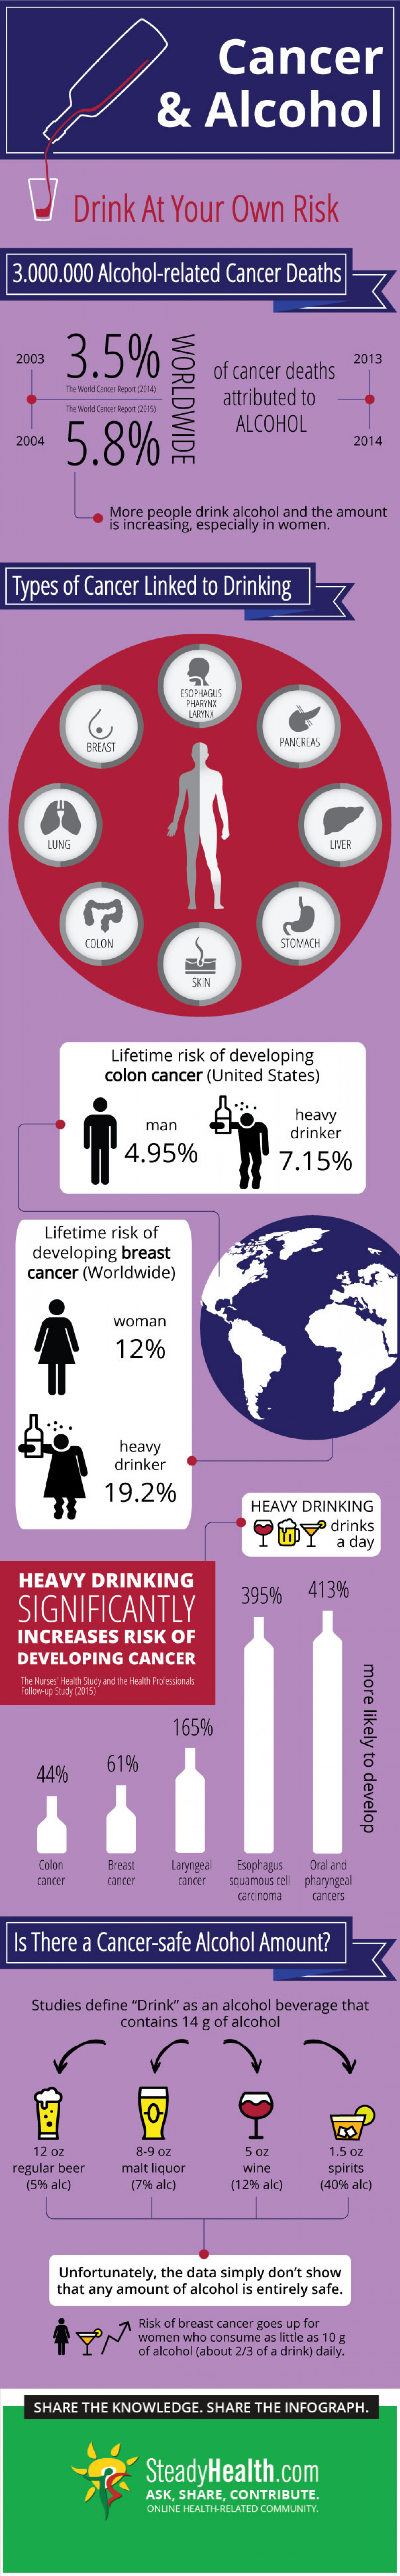 Alcohol And Cancer: Drink At Your Own Risk Infographic